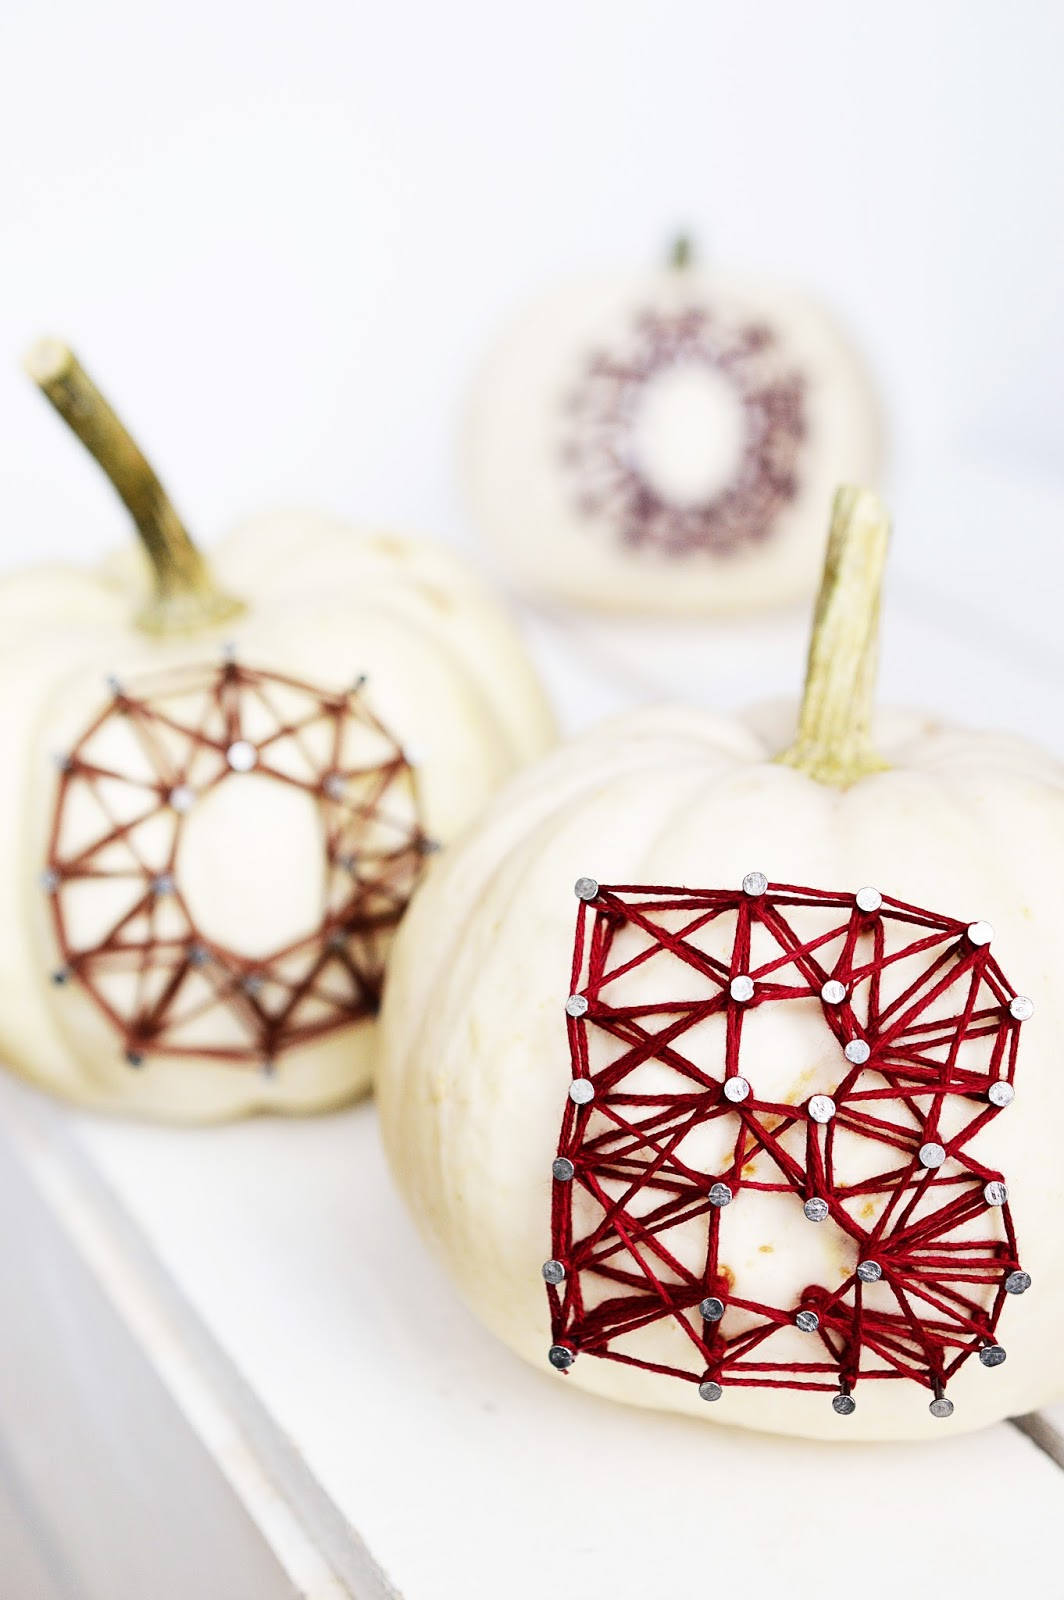 DIY String Art Pumpkins | Motte's Blog